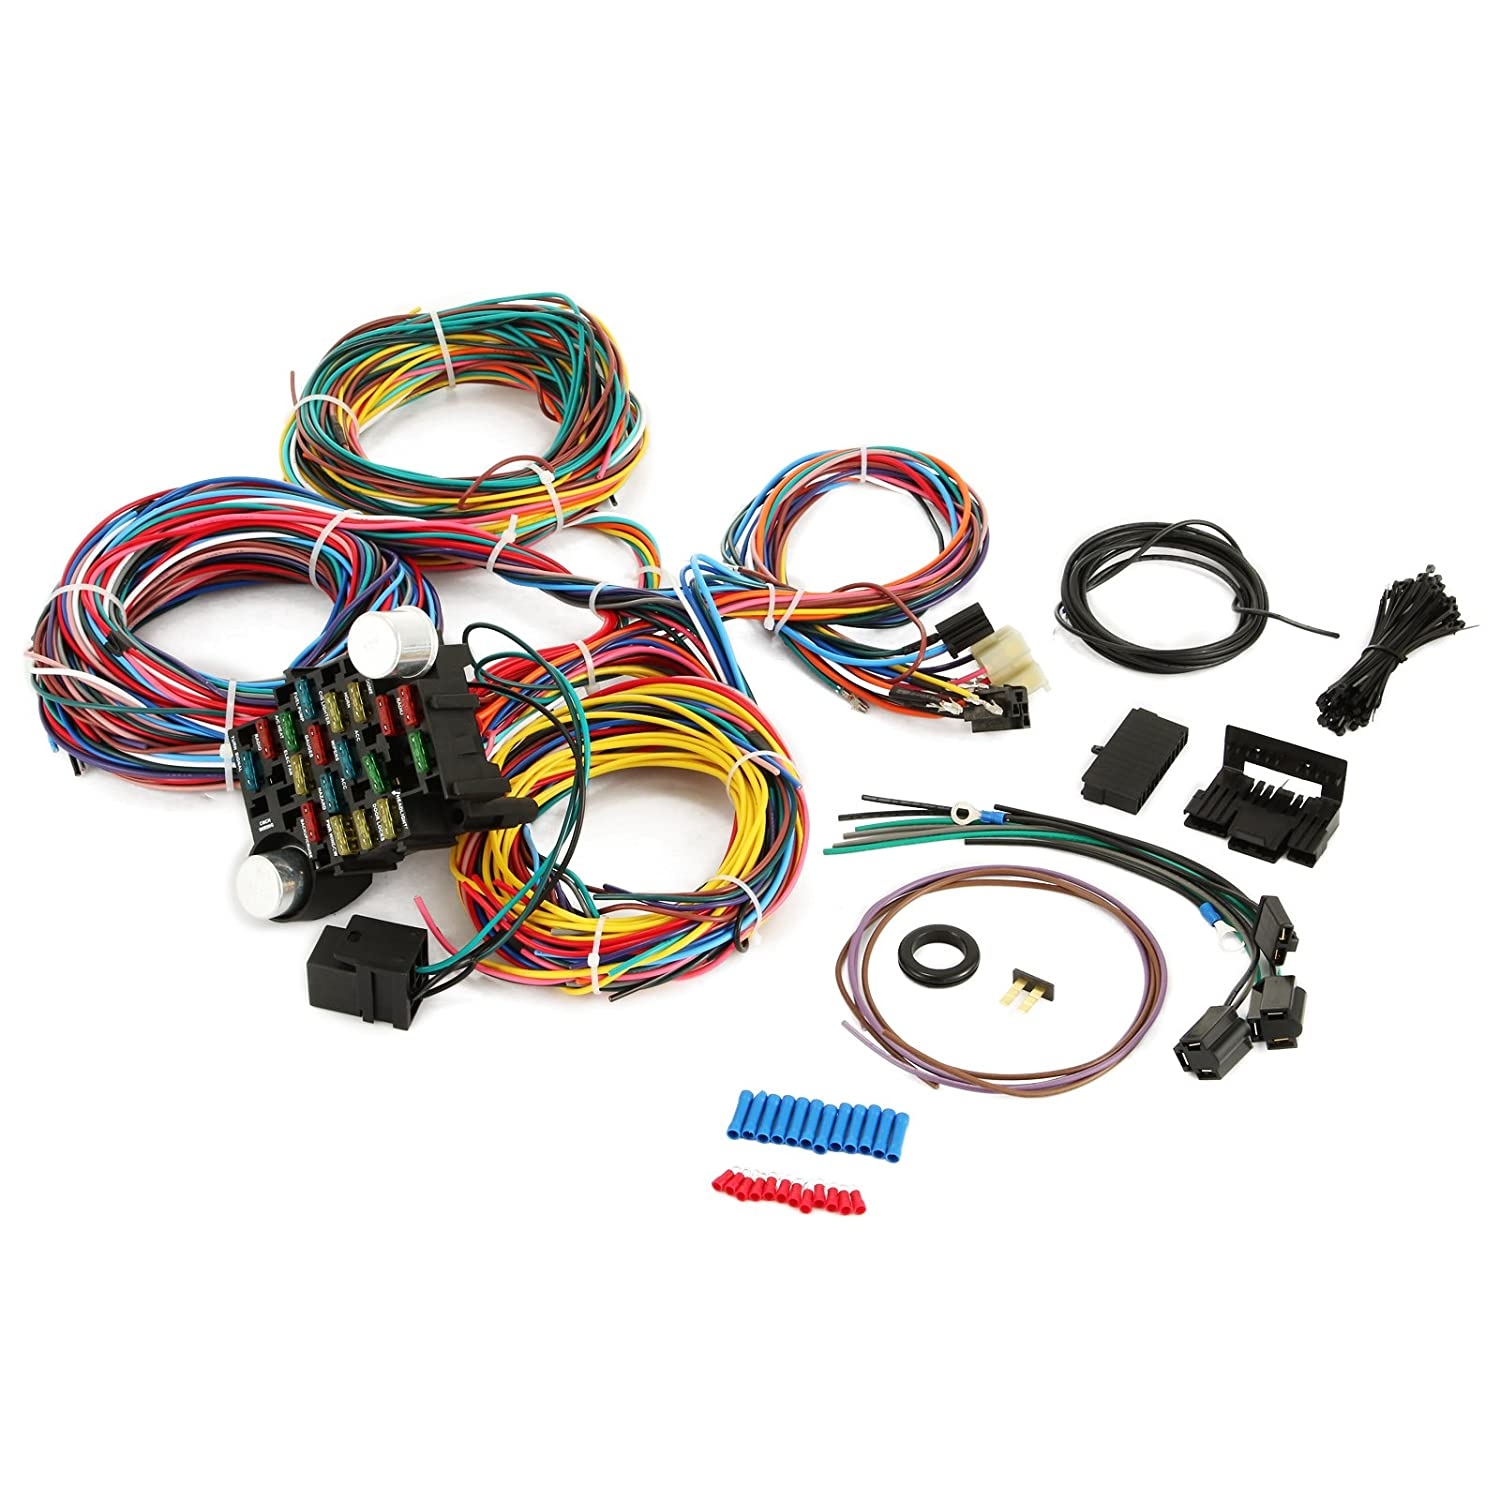 Amazon.com: CNCshop 21 Circuit Wiring Harness 17 Fuses Universal X-long Wires  Wiring 21 standard Color Wiring Harness Kit for Chevy Mopar Hotrods Ford ...